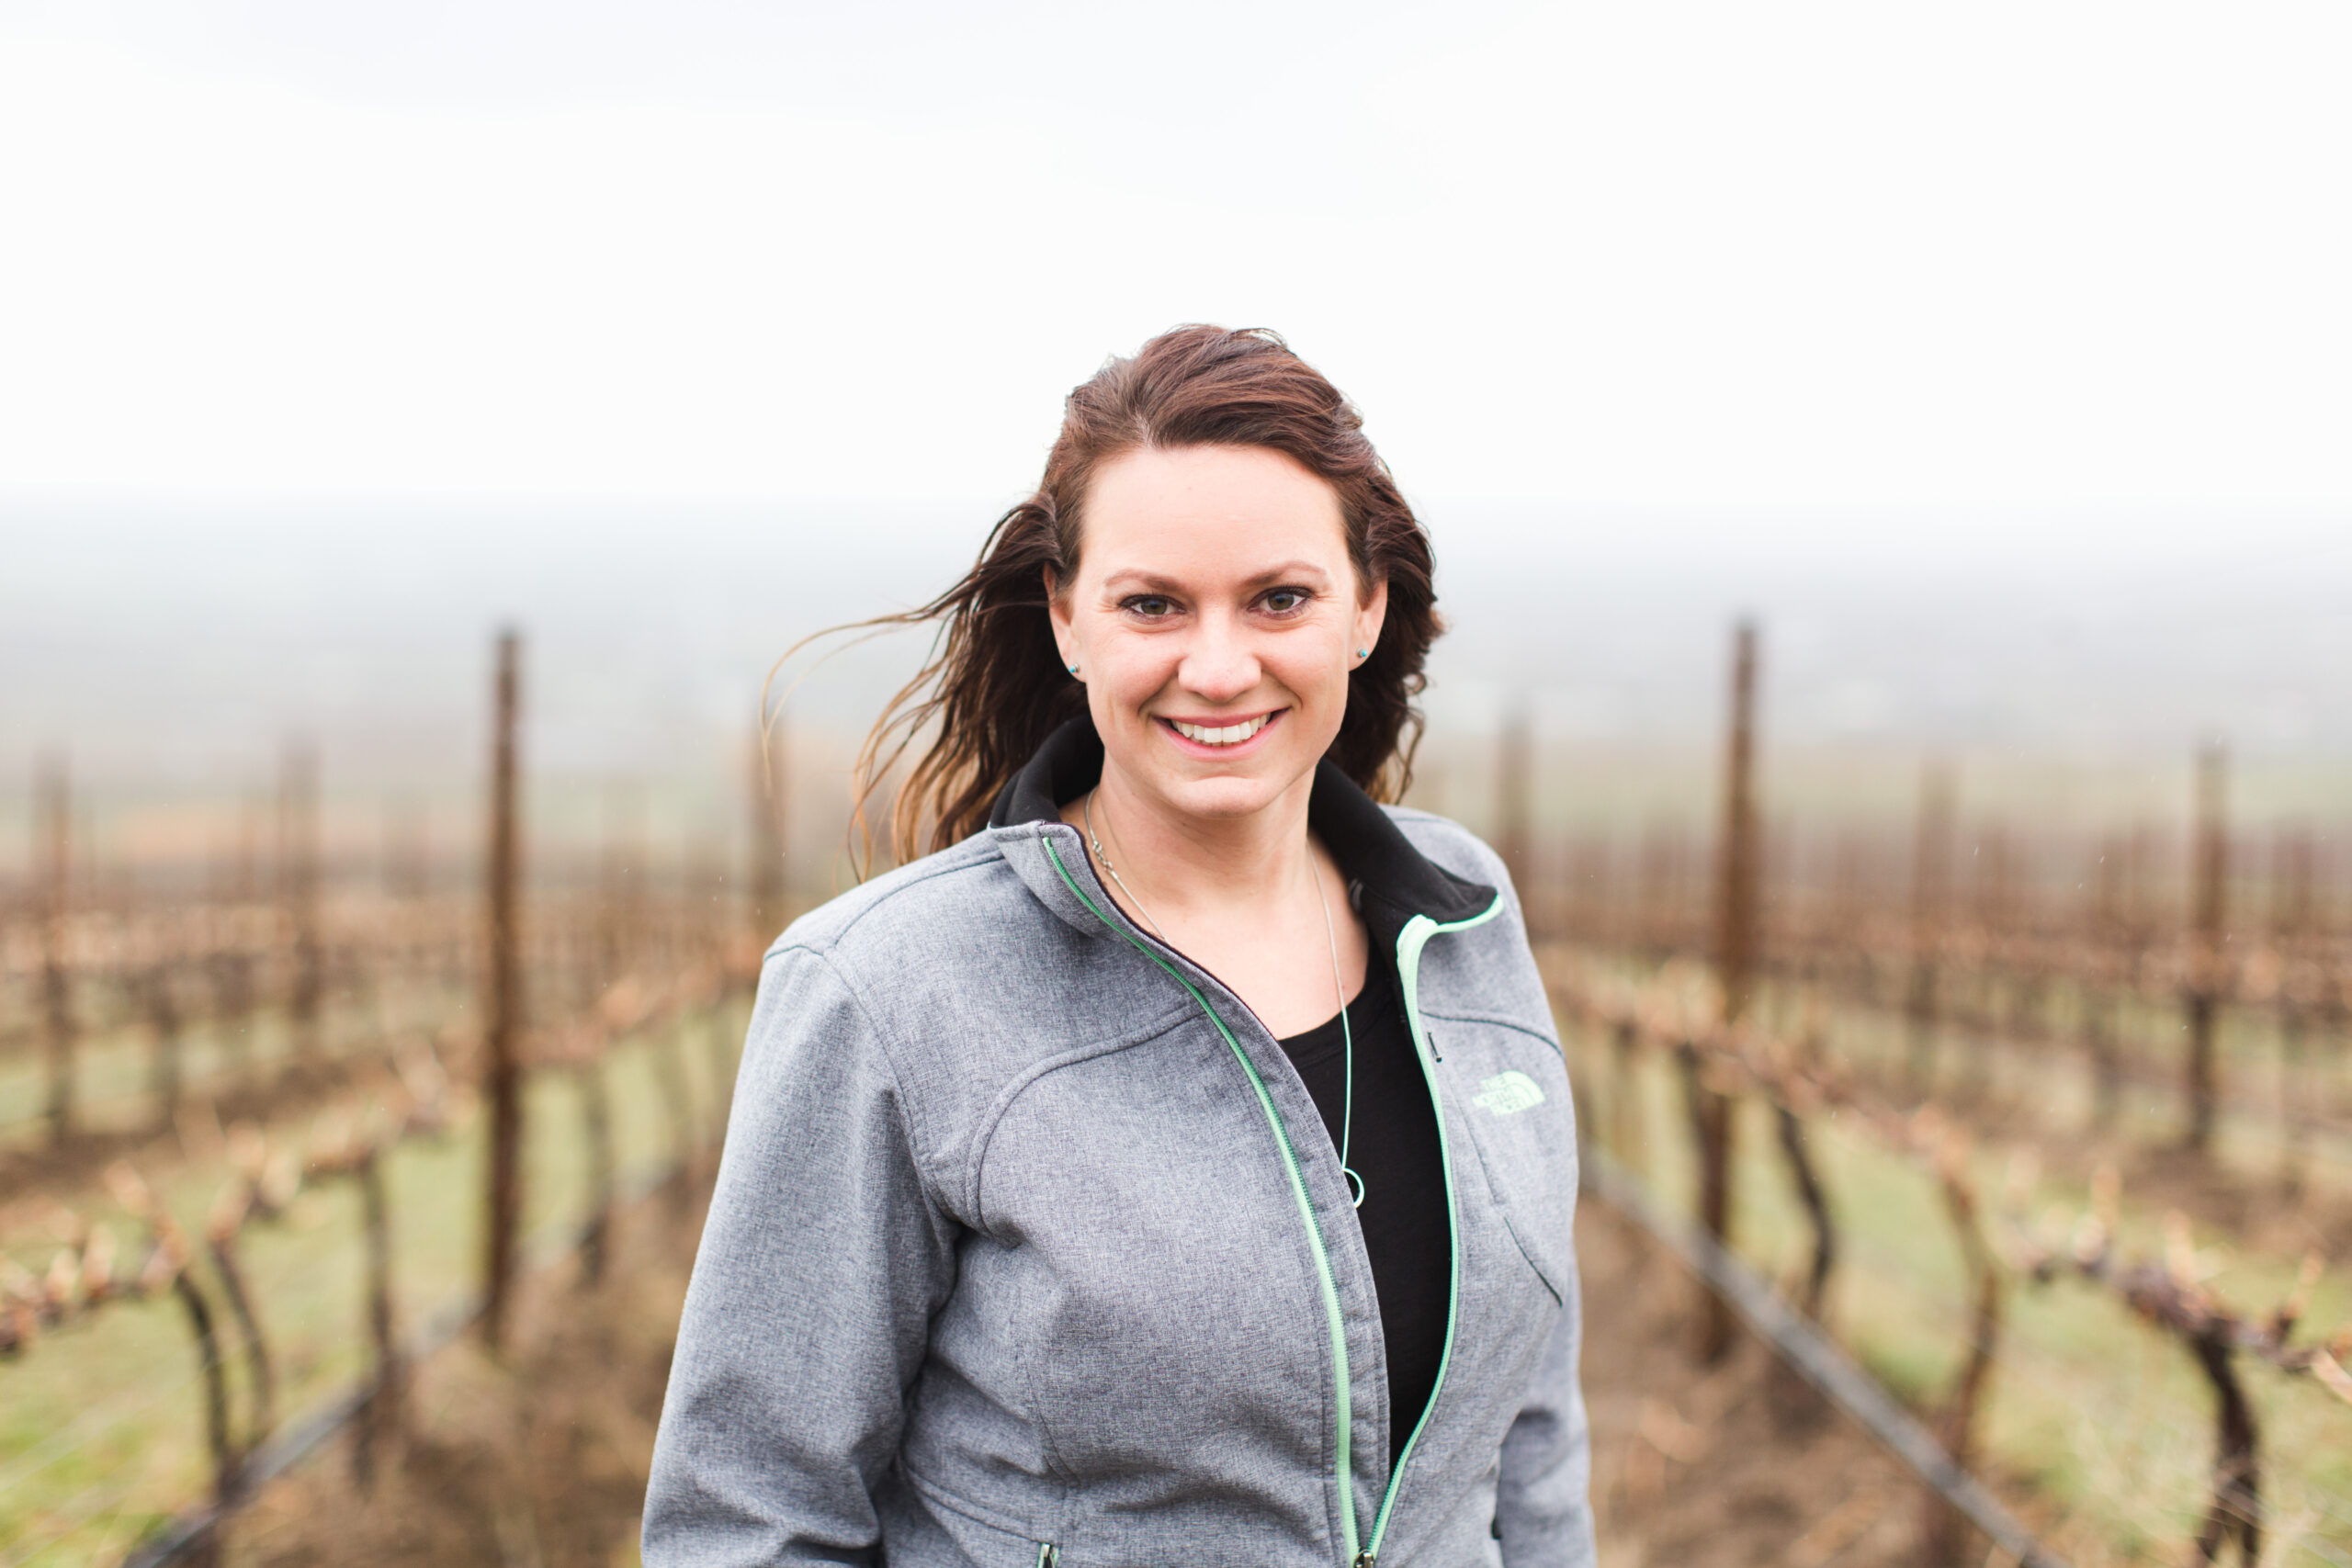 A woman with long dark hair and a grey jacket smiles and stand in front of grape vines without leaves, which are out of focus.